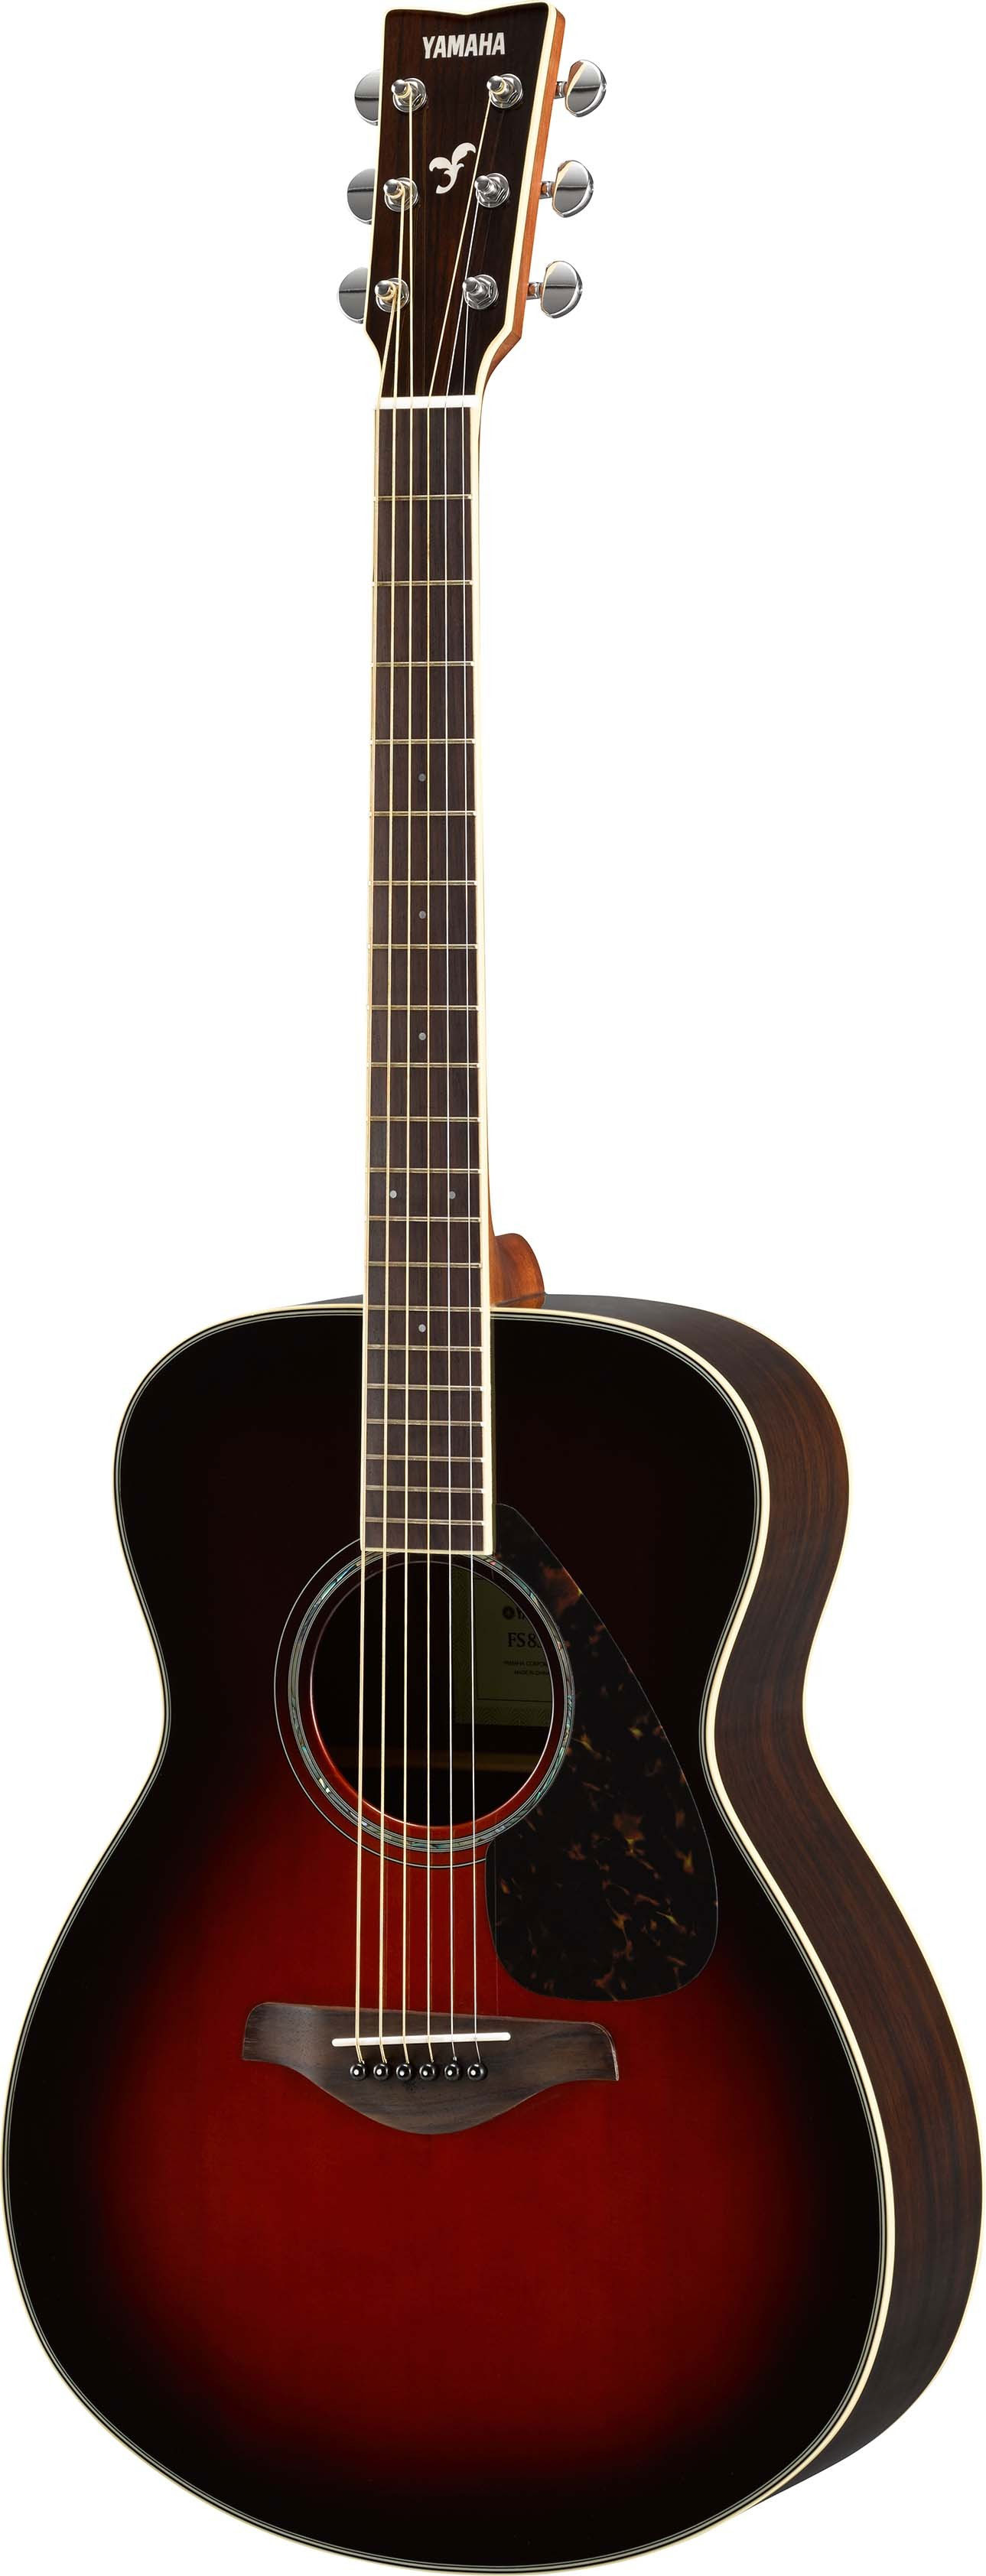 yamaha yamaha fs830 tbs natural small body acoustic guitar tobacco brown sunburst. Black Bedroom Furniture Sets. Home Design Ideas